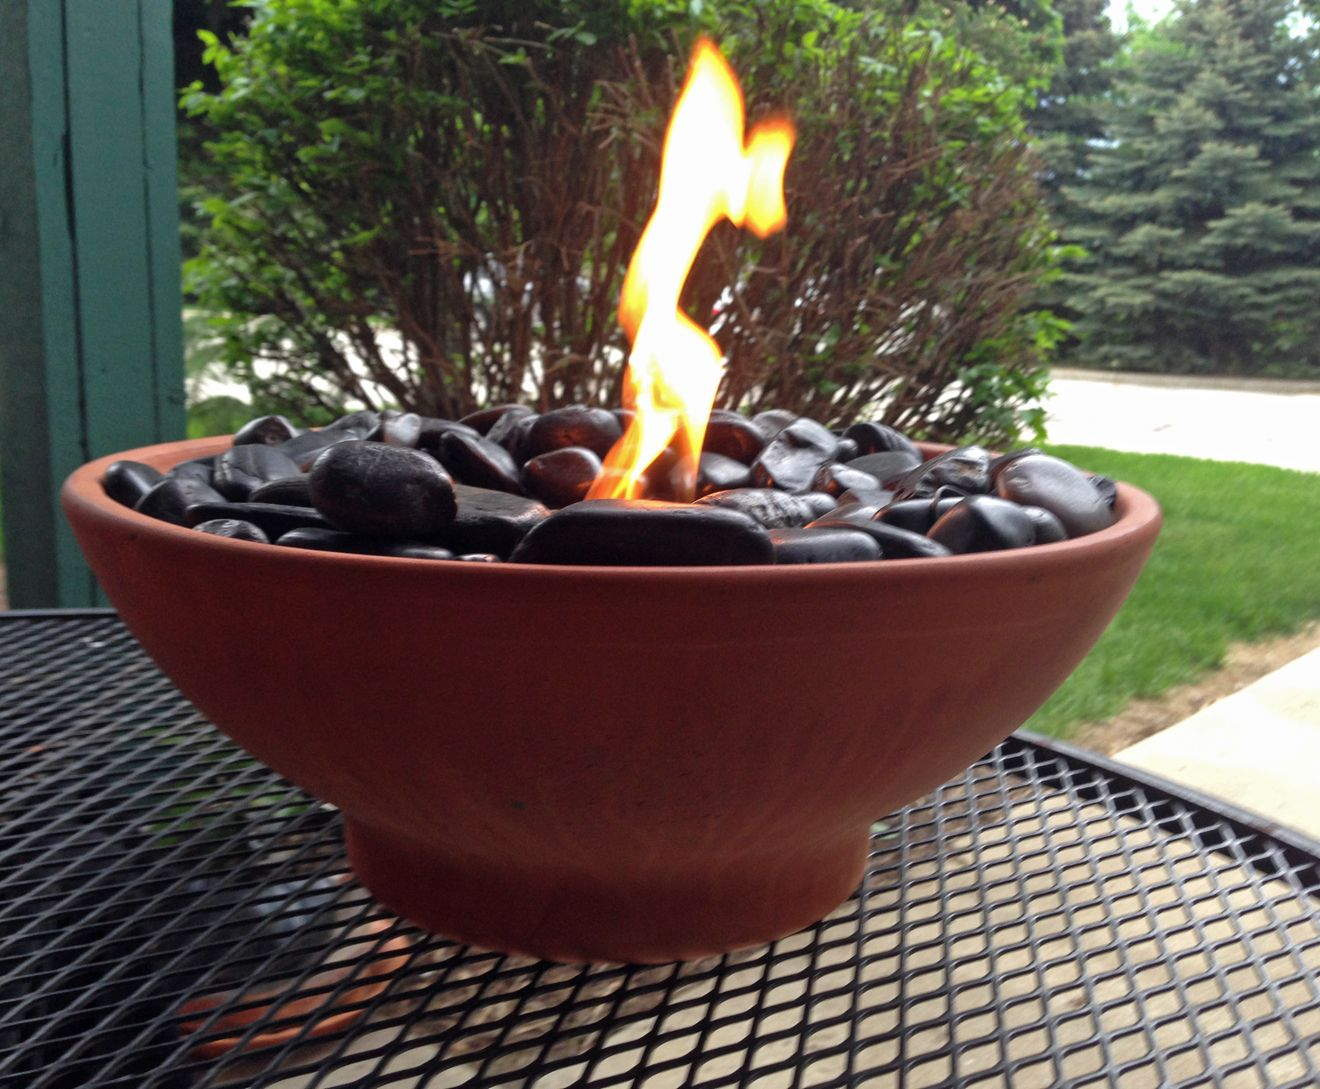 Diy Table Top Fire Pit Made With Black River Rocks And